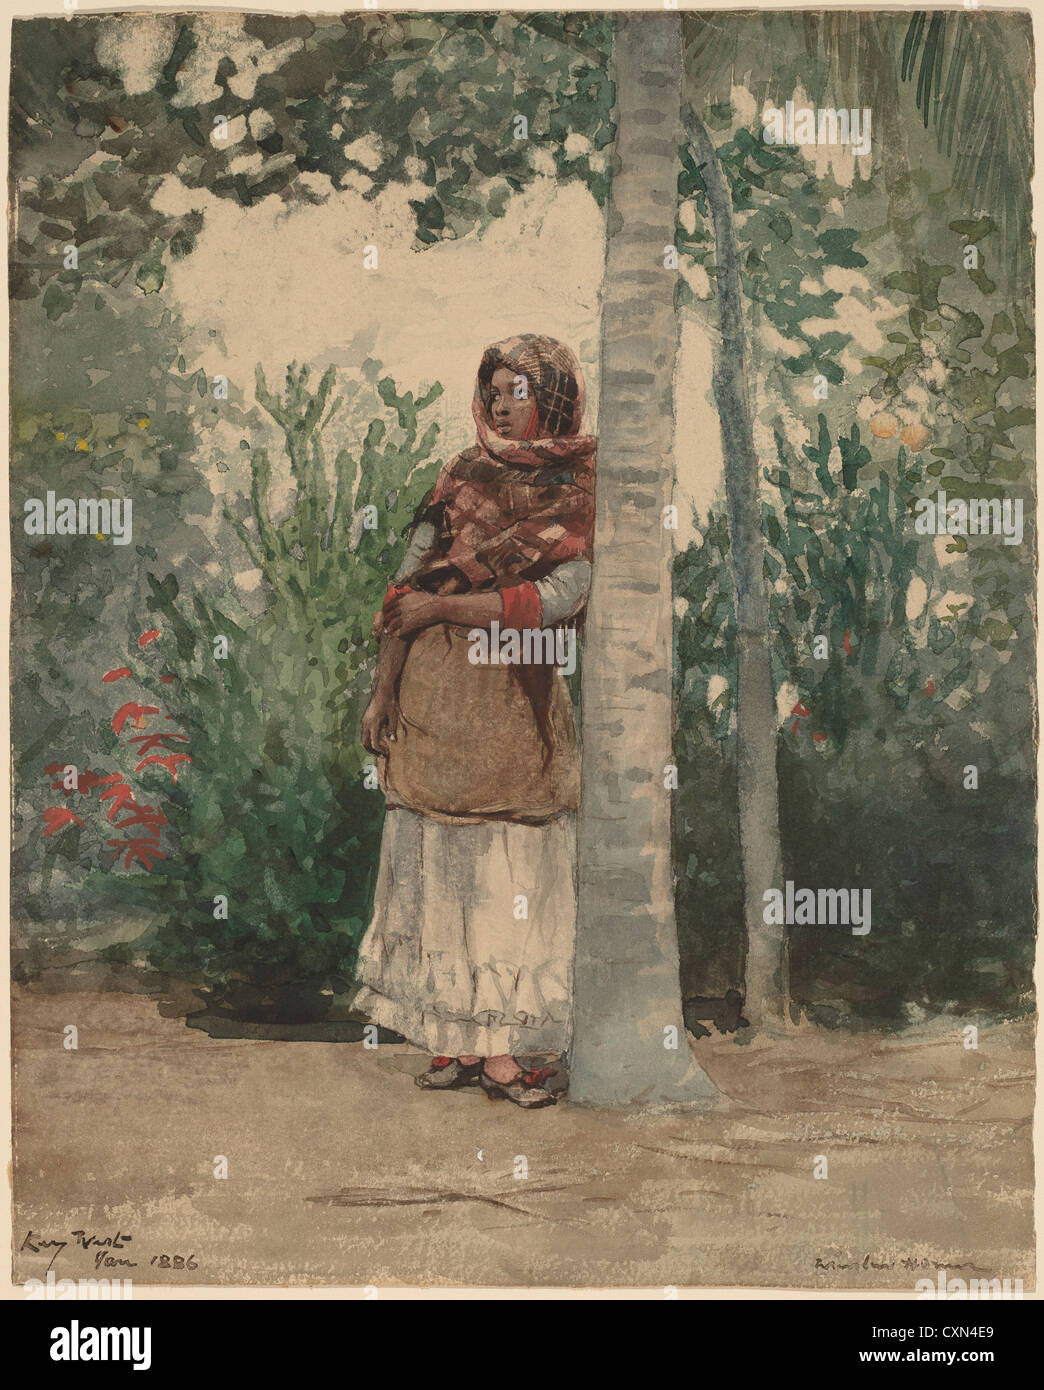 Winslow Homer (American, 1836 - 1910 ), Under a Palm Tree, 1886, watercolor - Stock Image